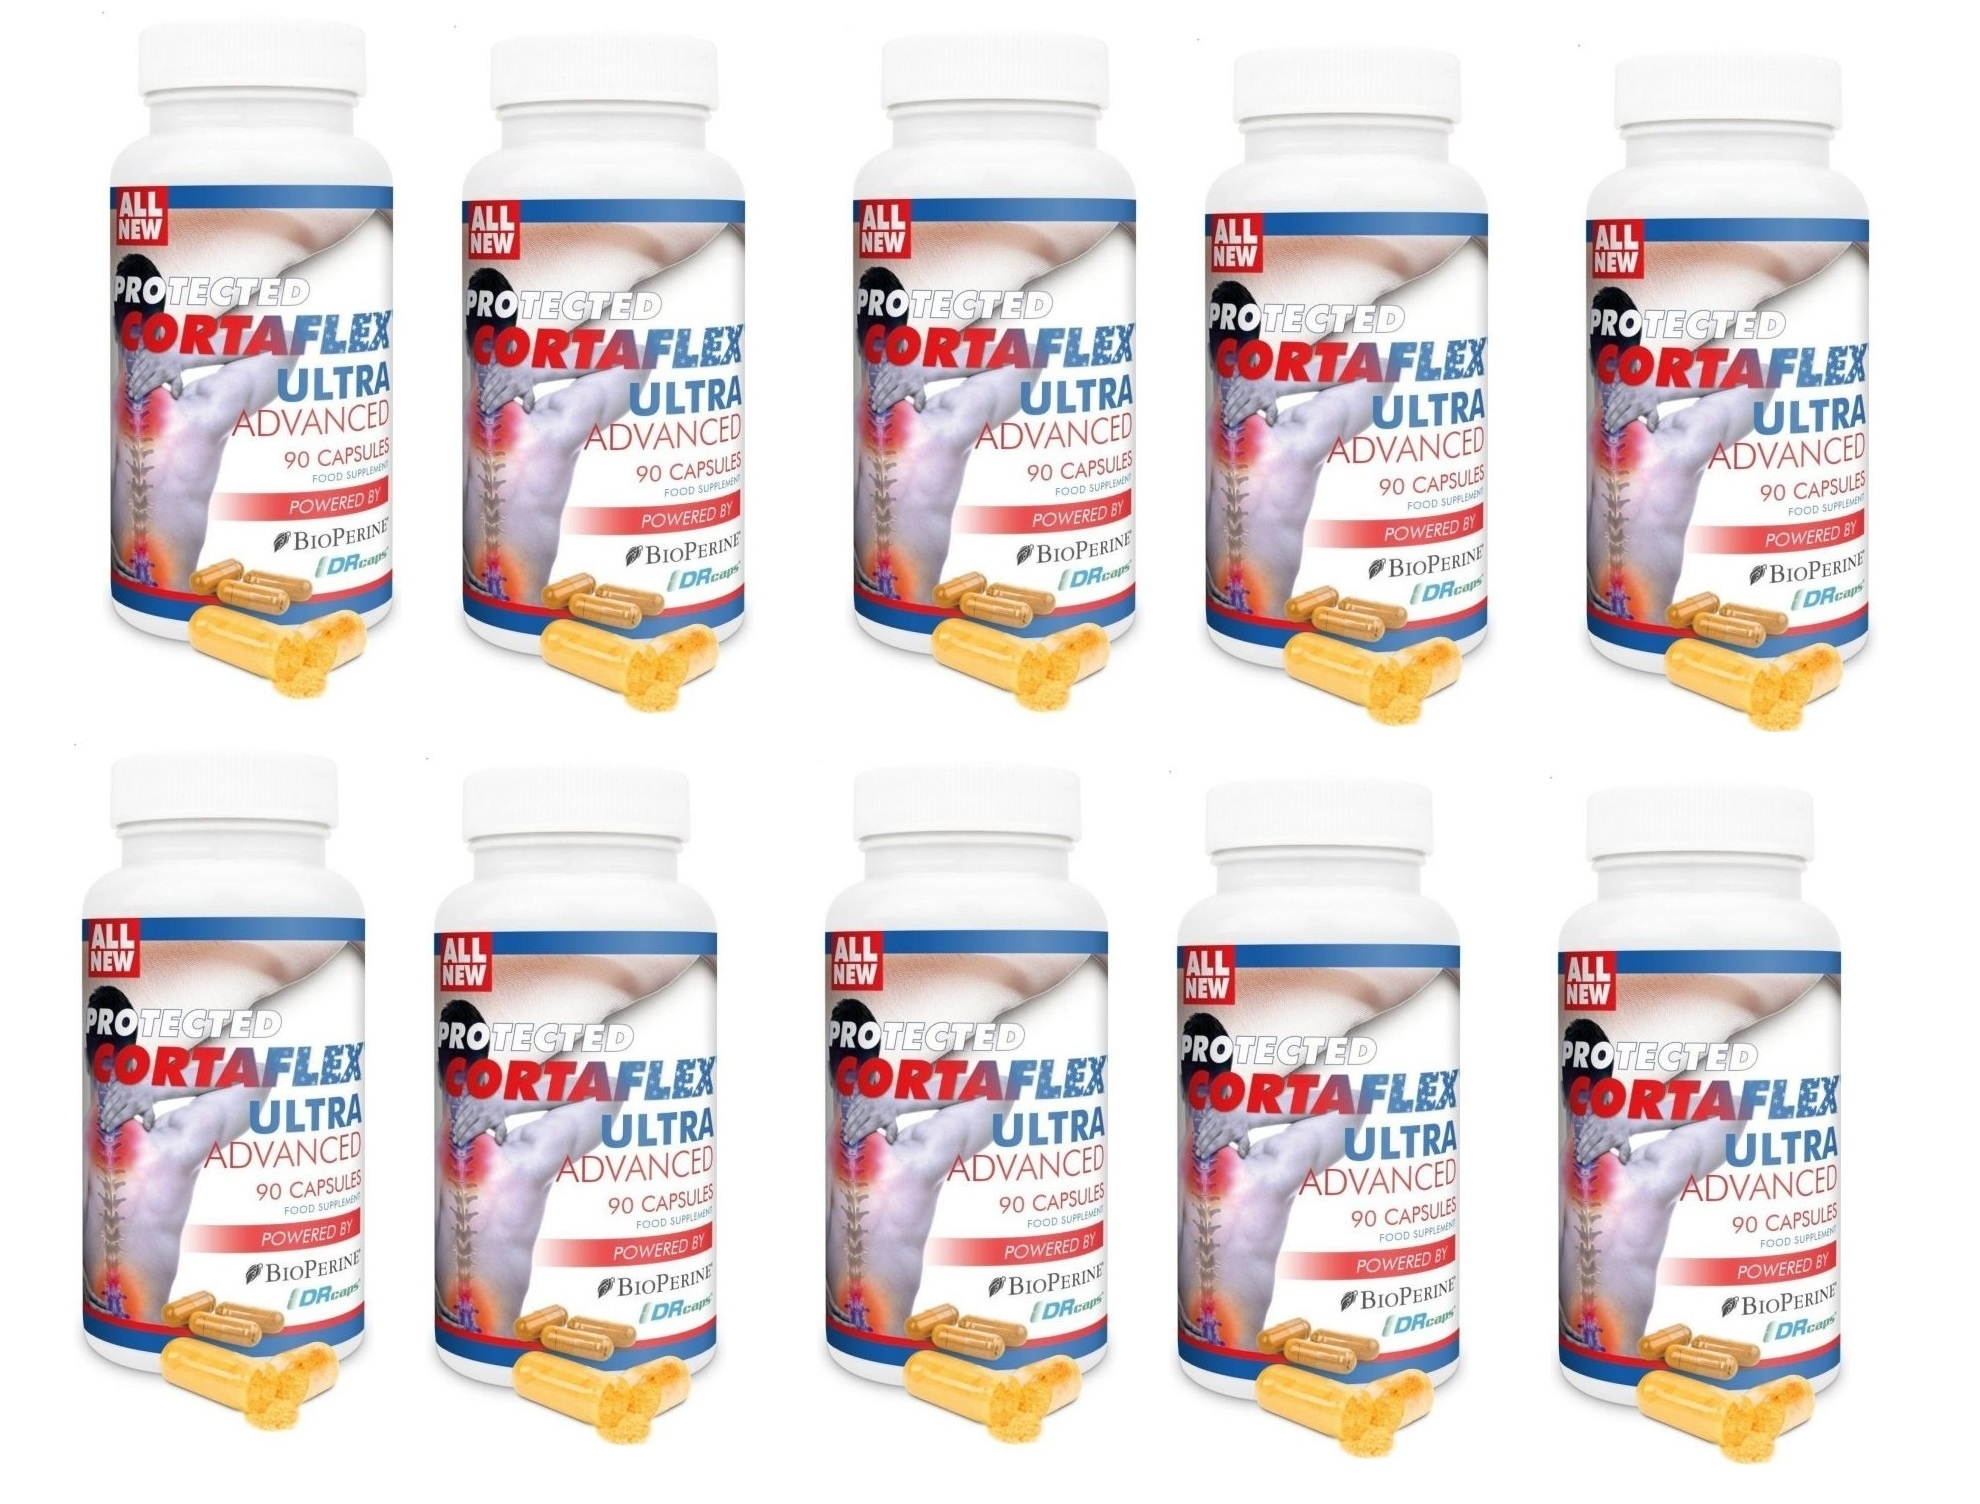 Dental Supps Protected Cortaflex Ultra Advanced, 90 Capsules, 10-packs